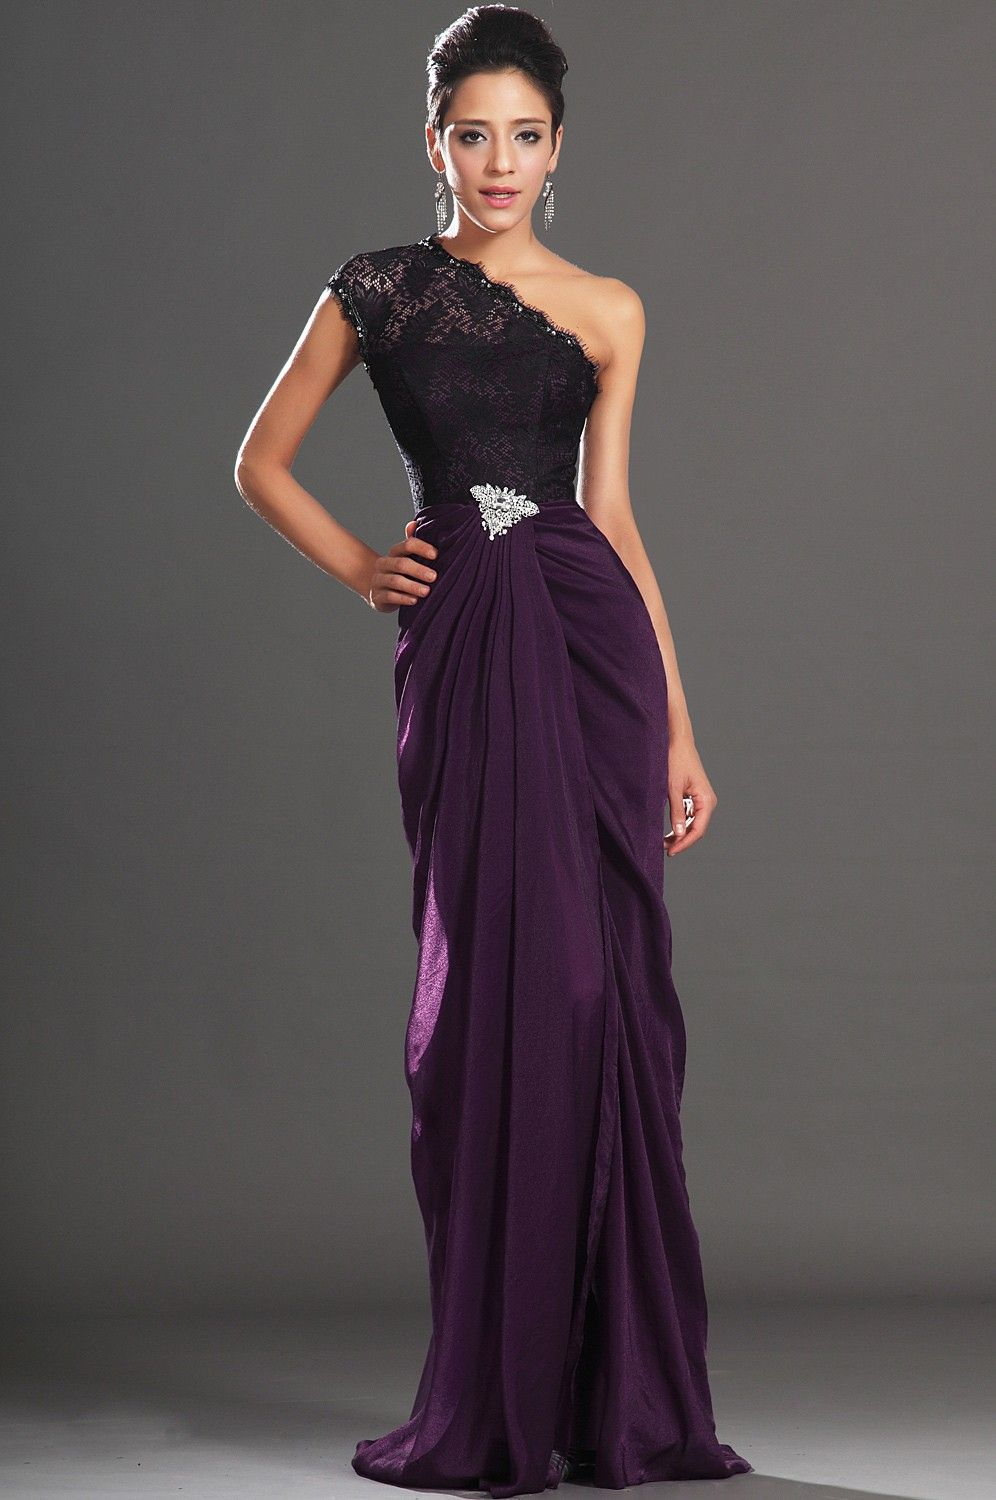 2013 New Elegant Lace A-Line One Shoulder High split Evening Dress ...